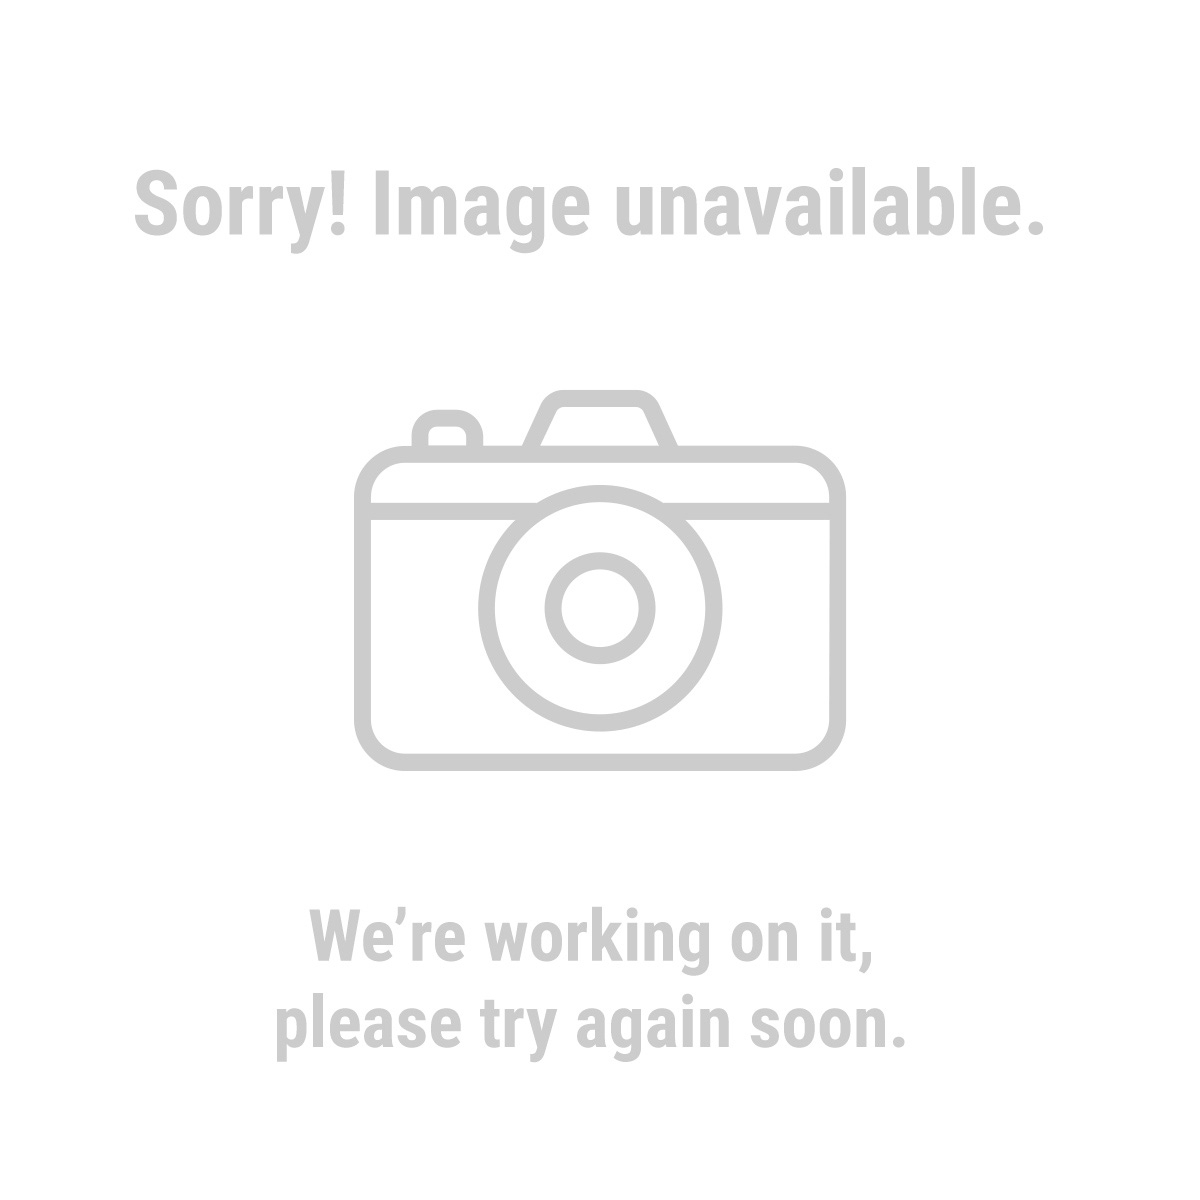 Predator® 63404 1 in. Intake/Discharge 79cc Gasoline Engine Water Pump - 35 GPM